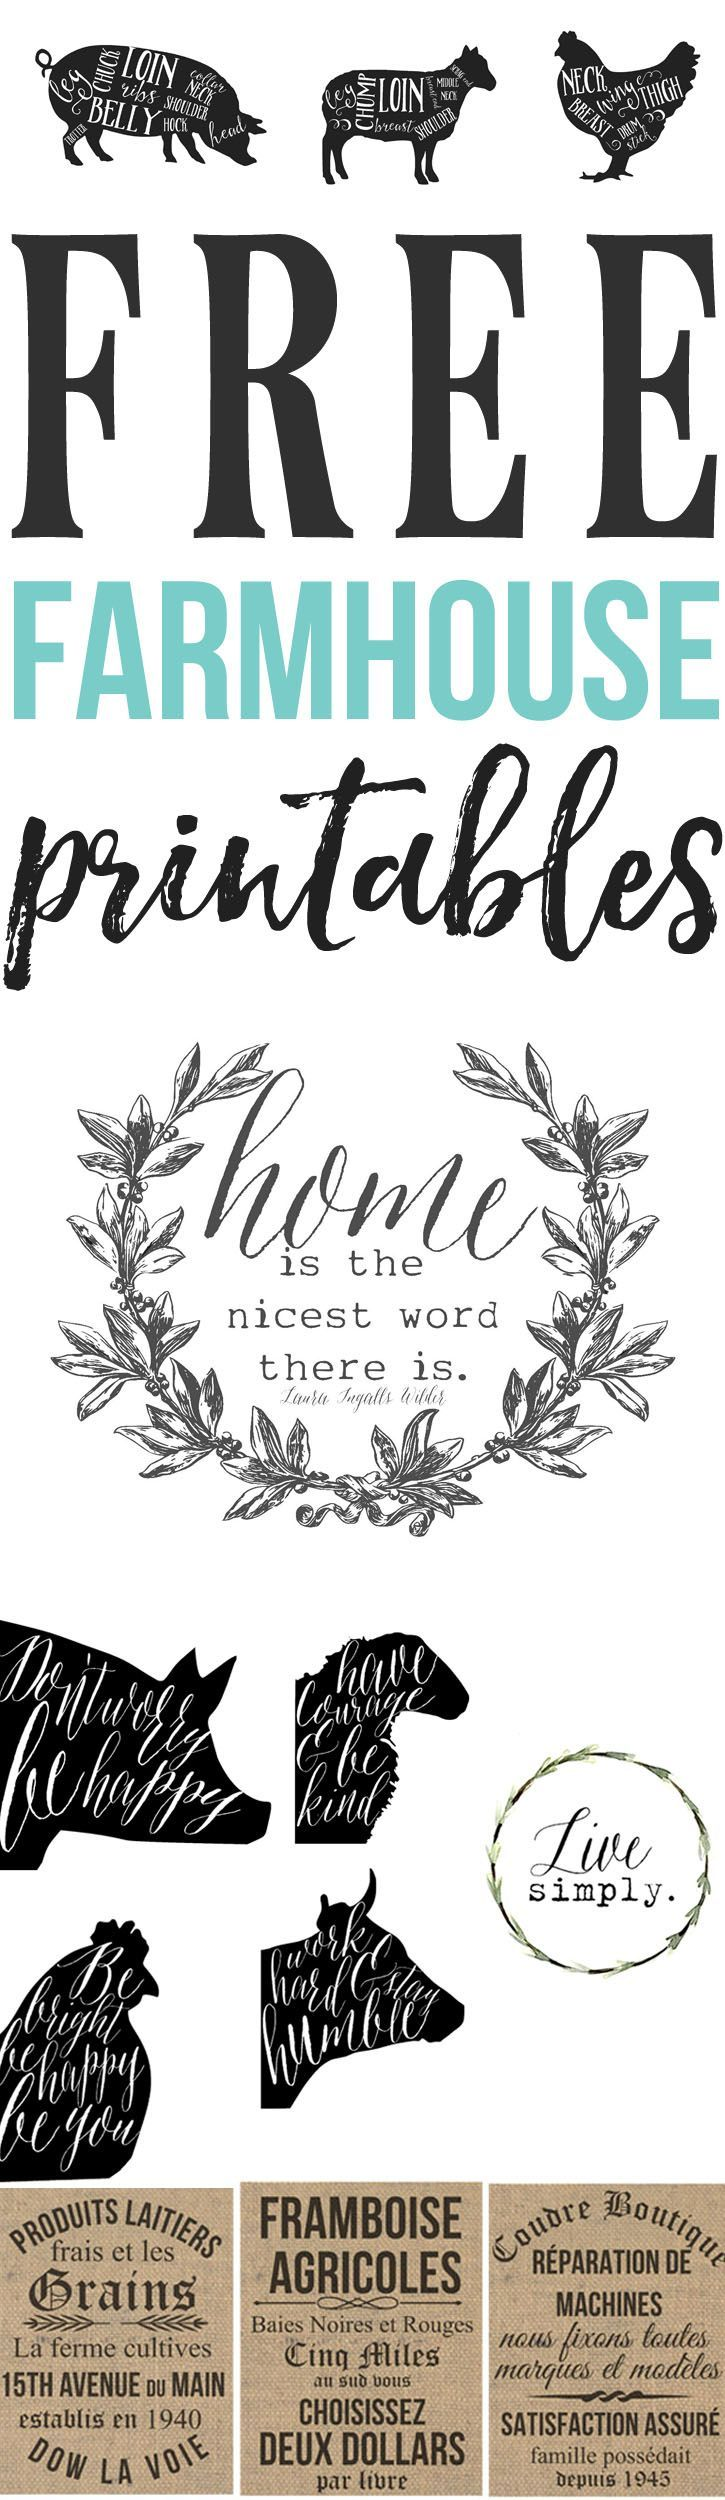 Free Farmhouse Printables For Your Home Cricut, Free and